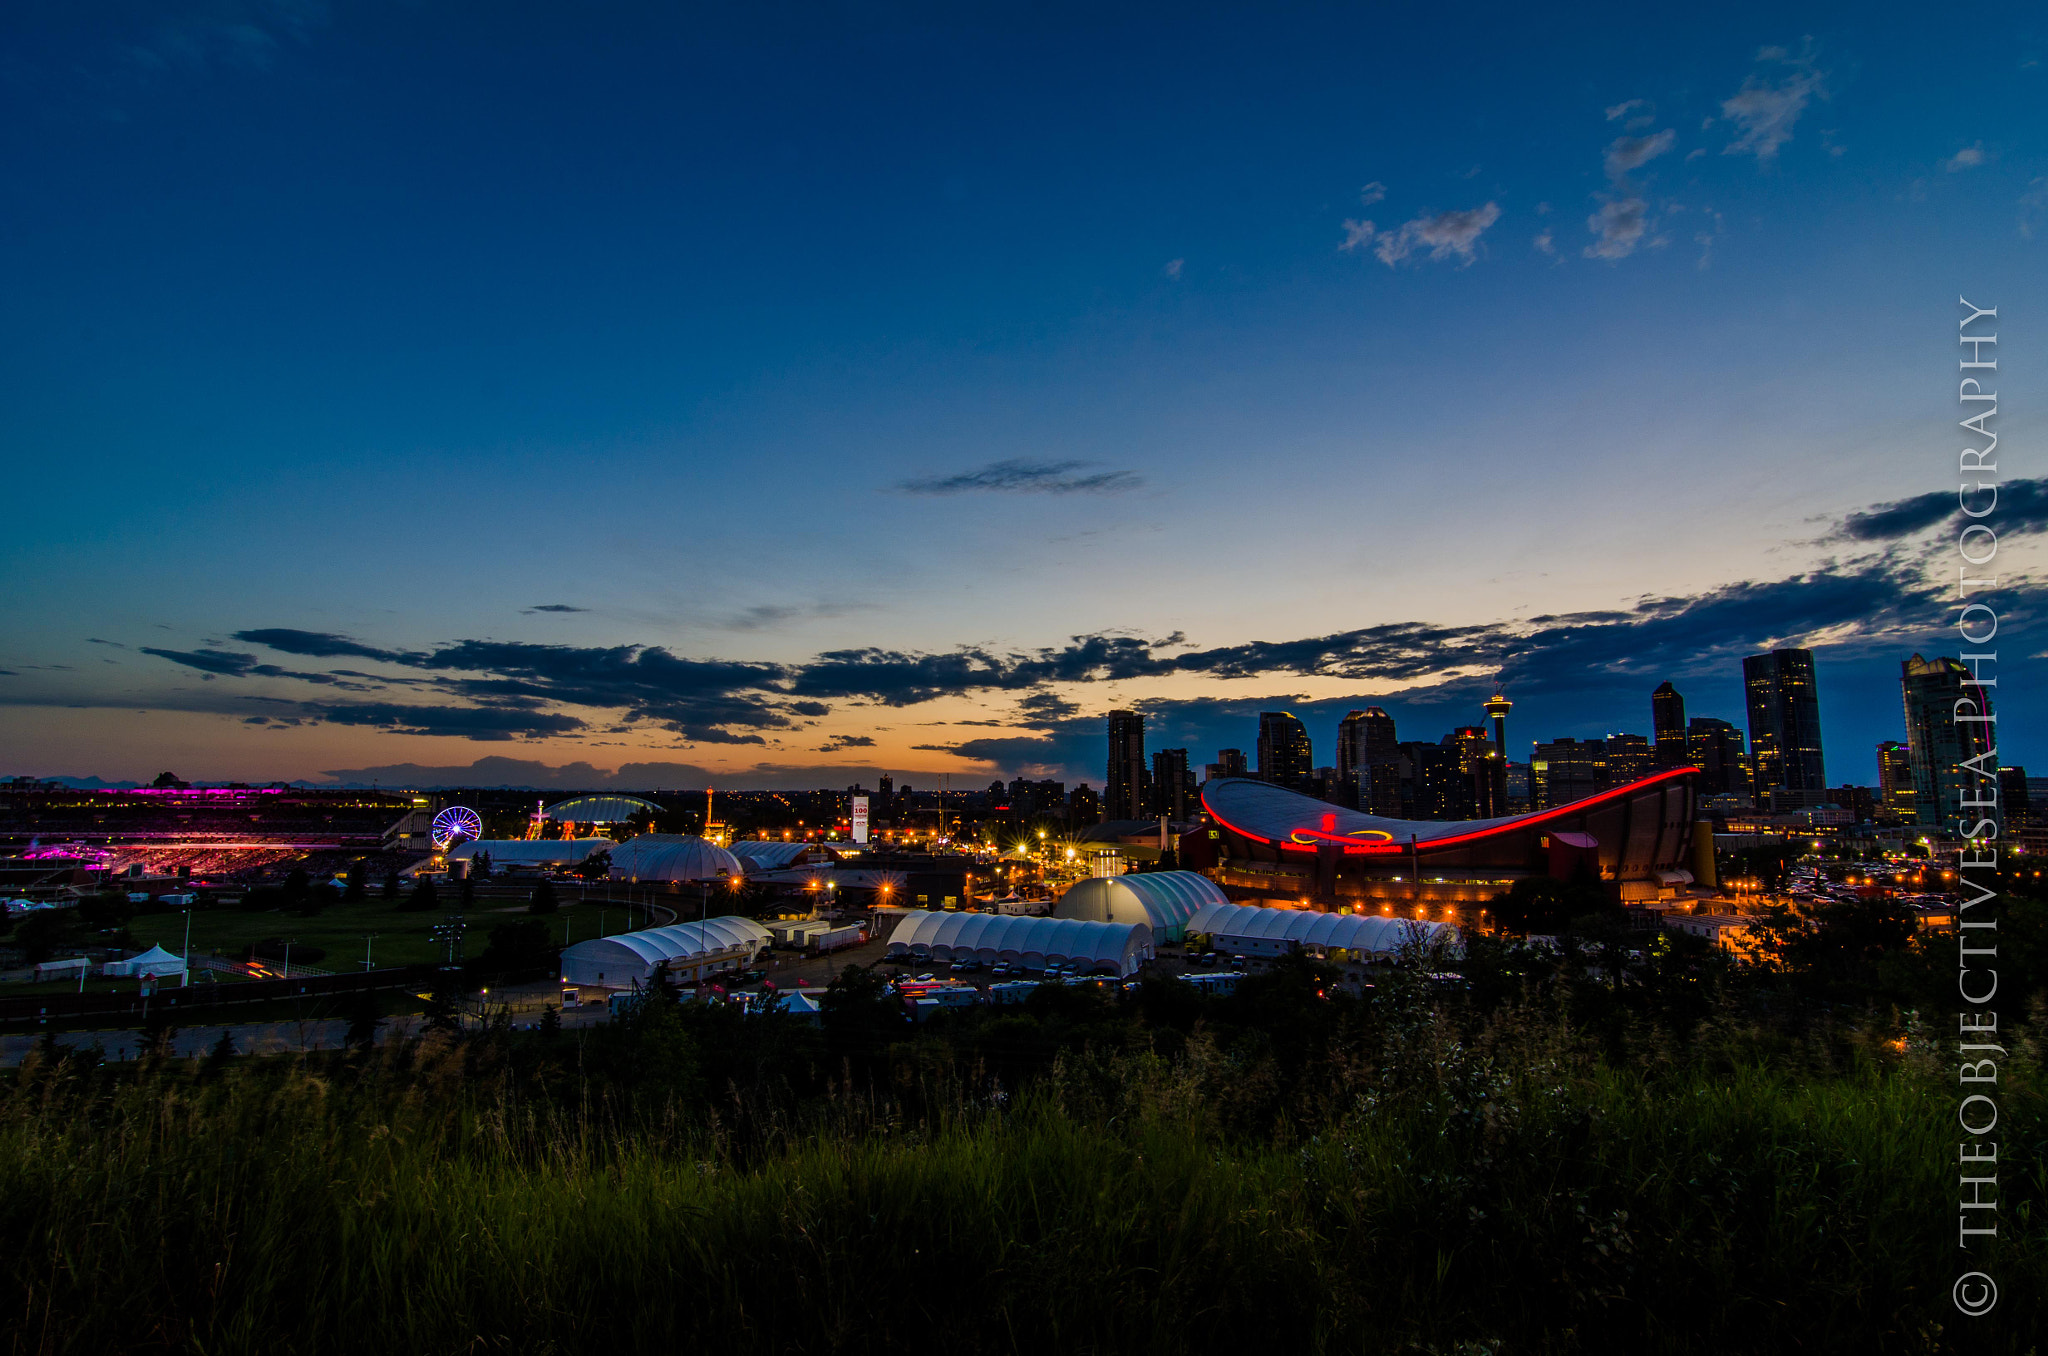 Photograph Stampede Grounds by Kevin Smith on 500px